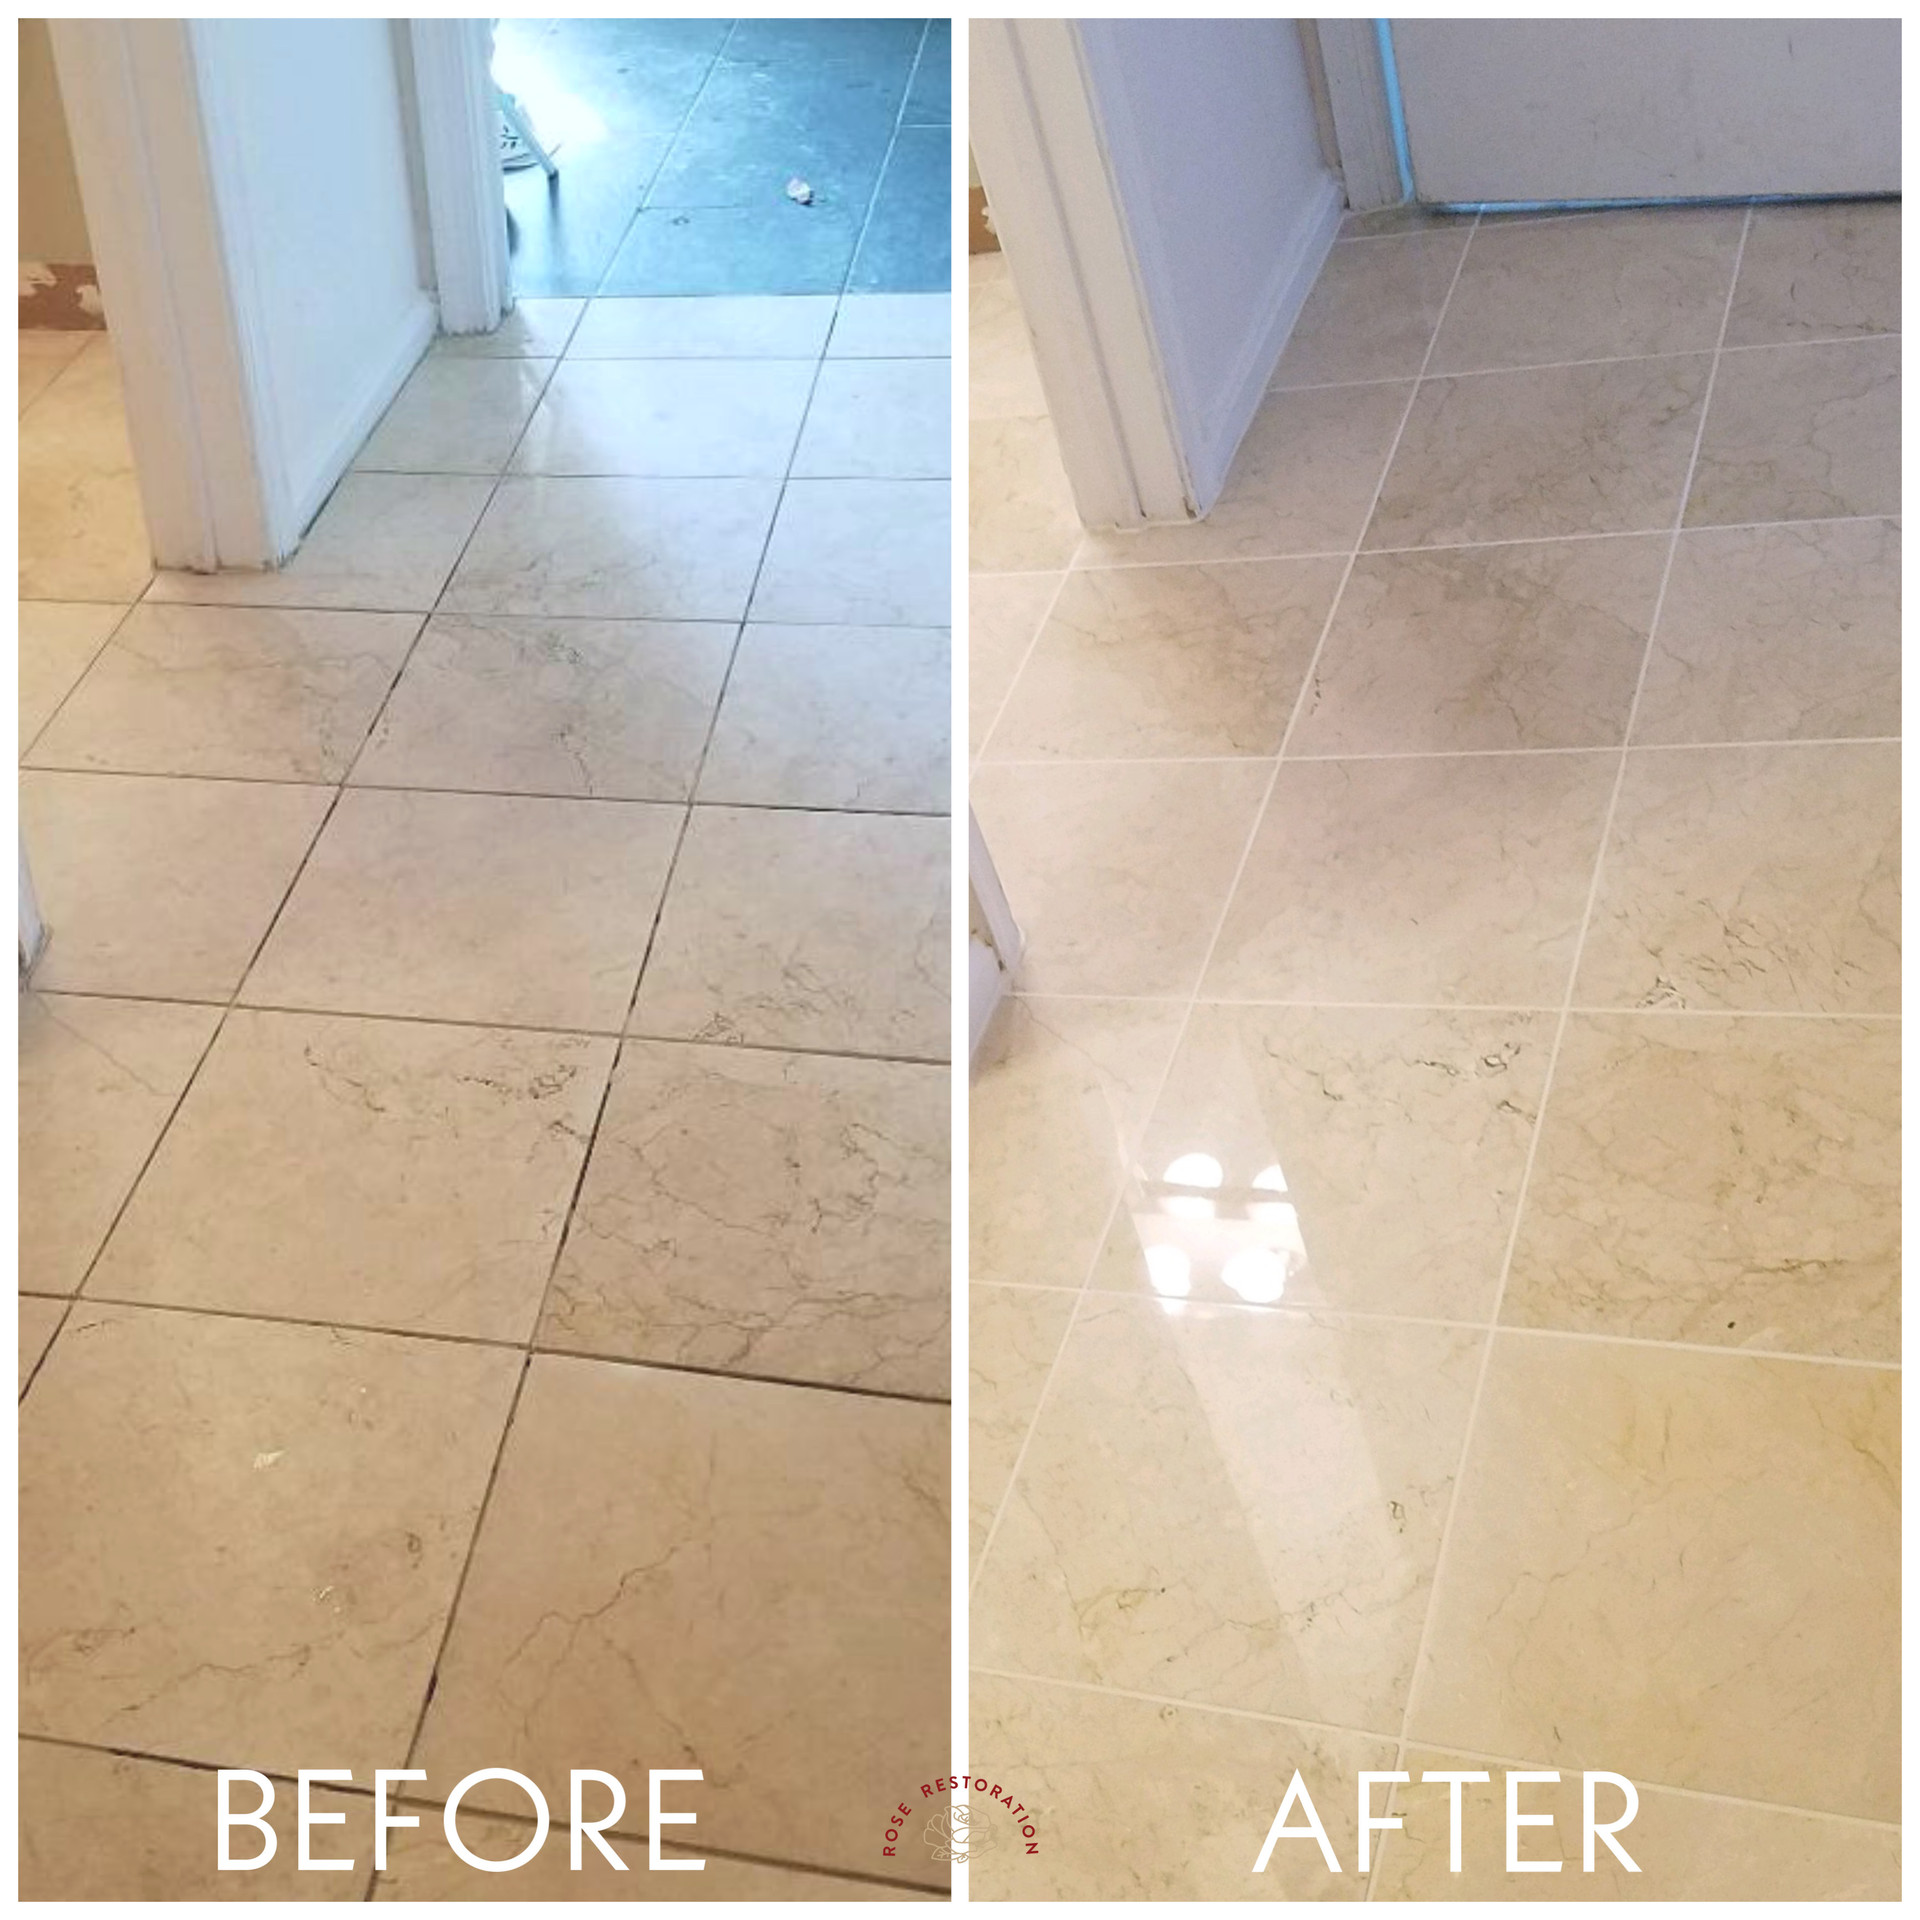 Grout Cleaning Before and After.jpg